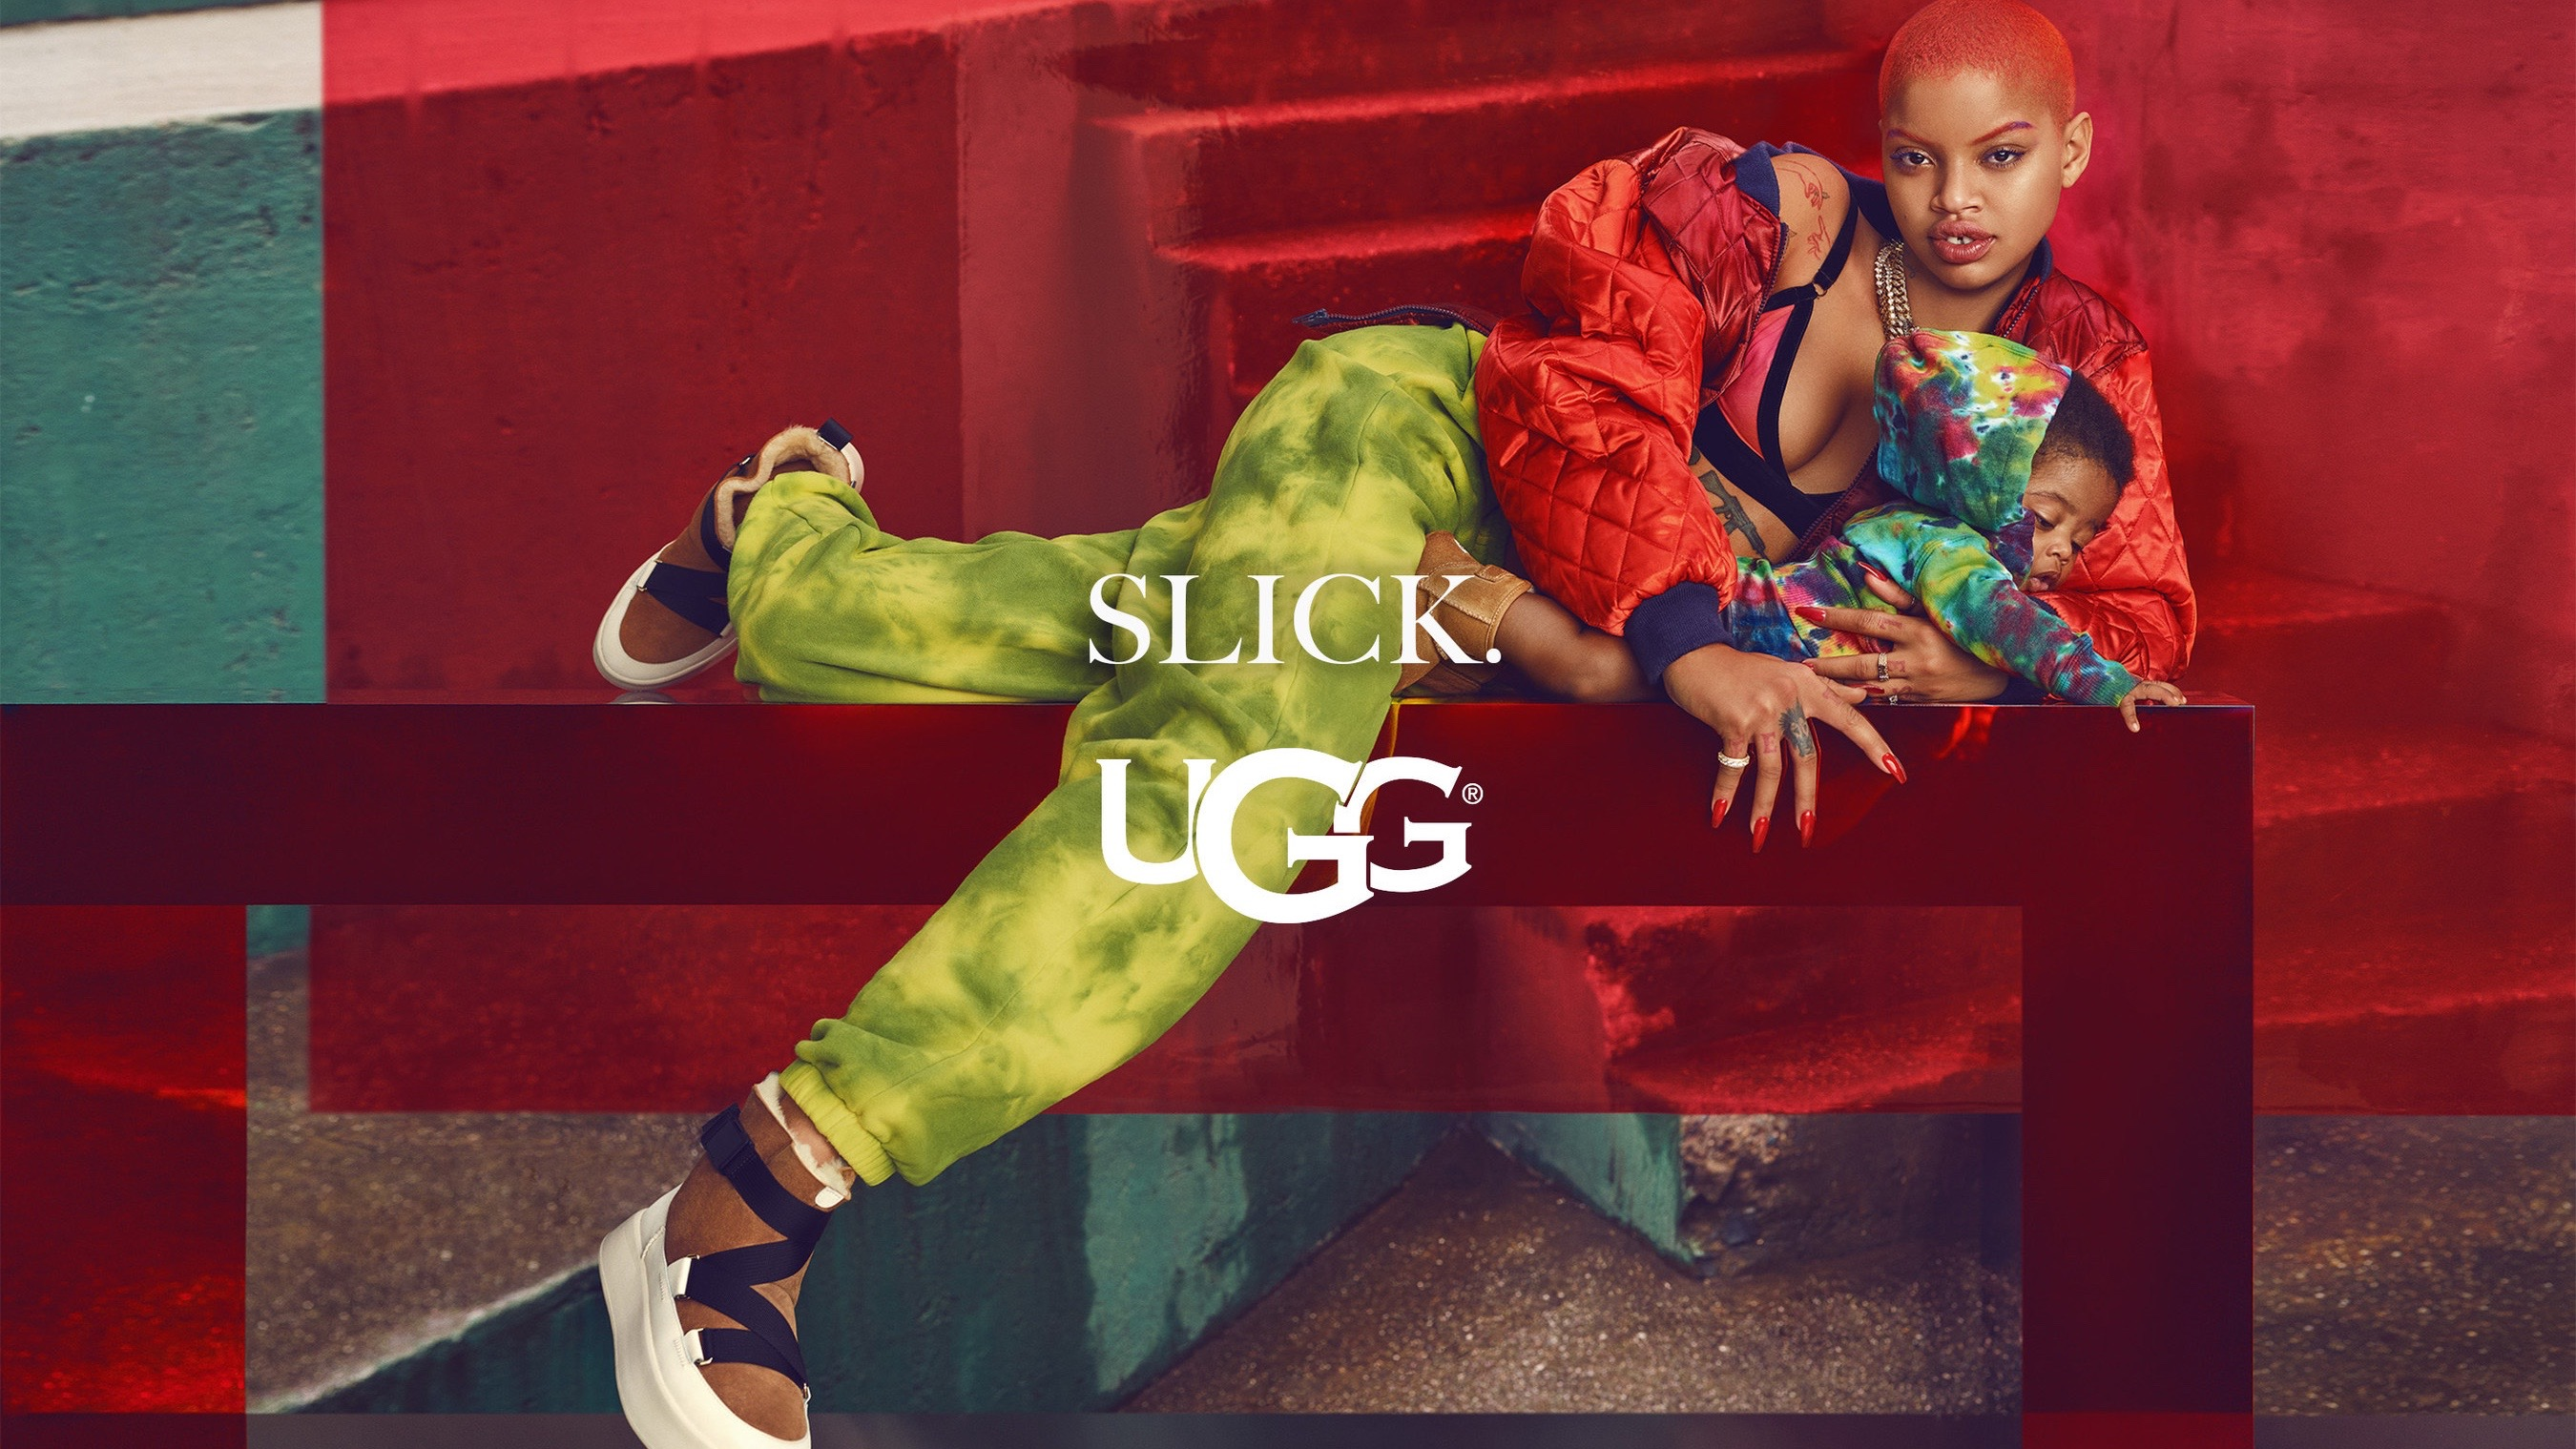 UGG Autumn Winter 2019 Campaign 1